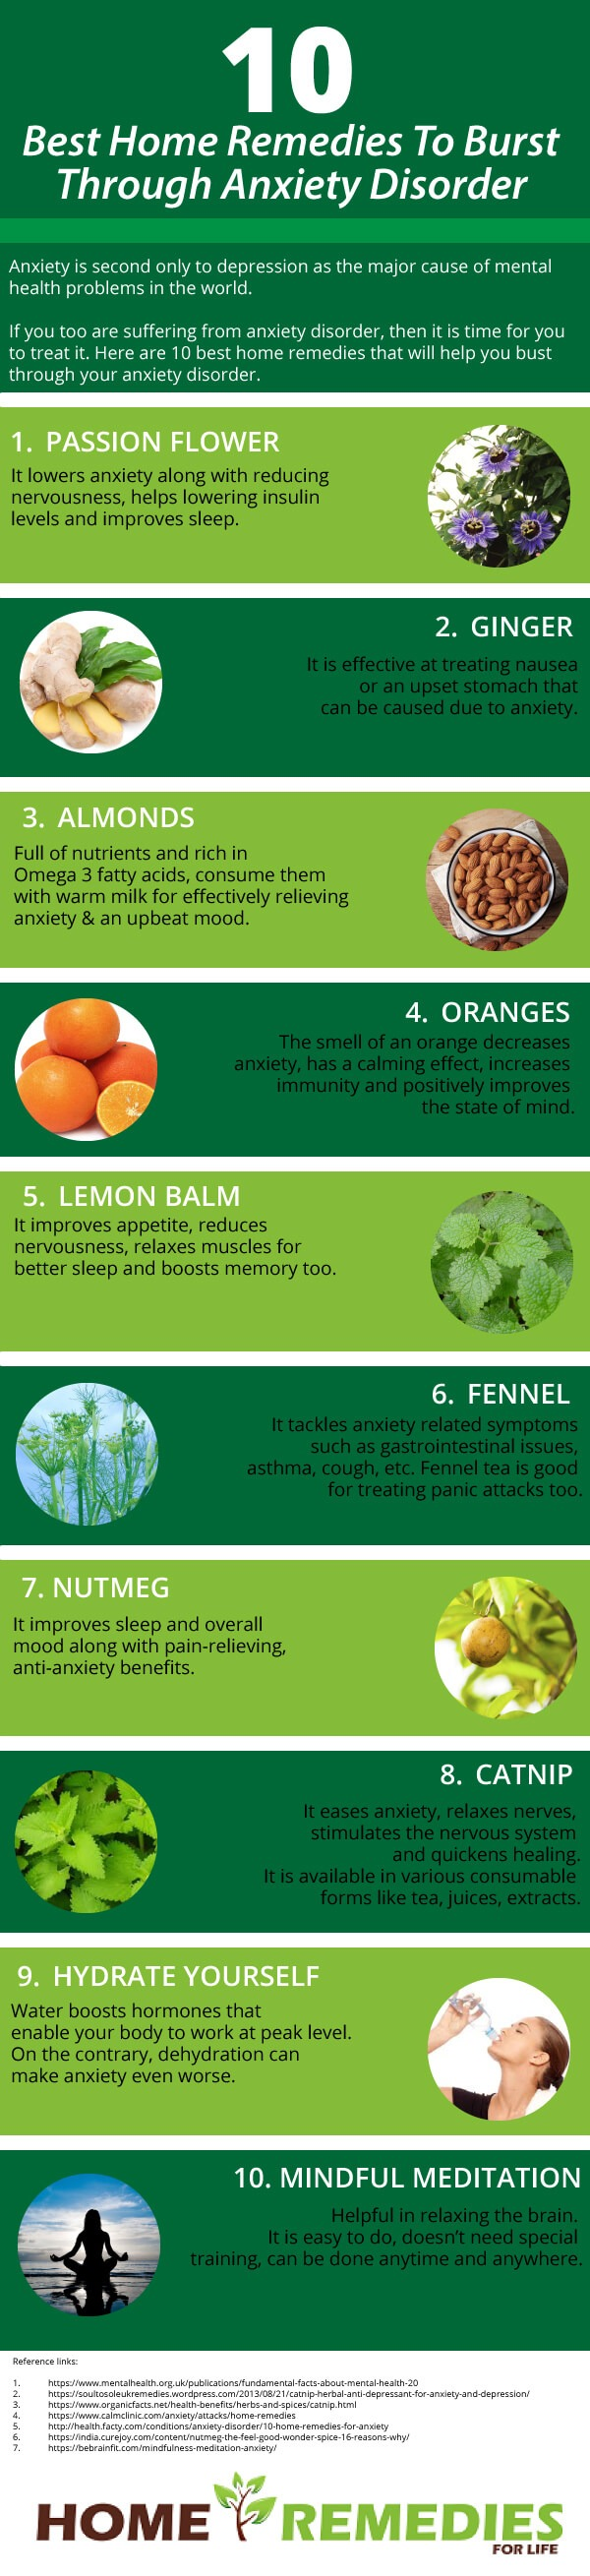 10-best-home-remedies-bust-anxiety-disorder